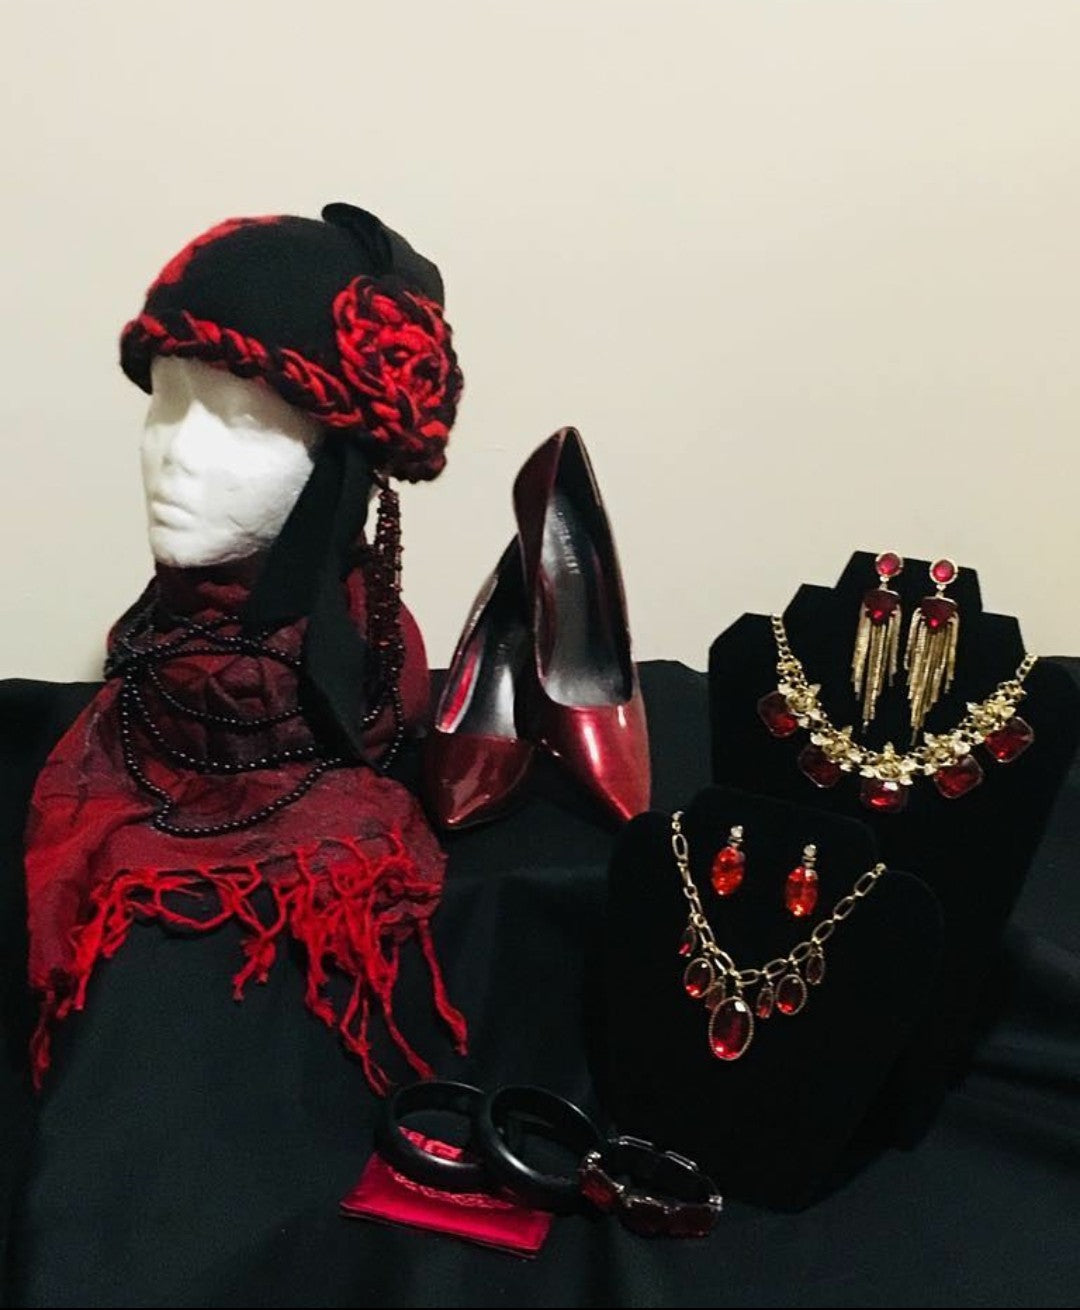 red and black felt cloche with bead tassel. Red stilettos, red rhinestone jewelry, and black bracelet and red cardholder